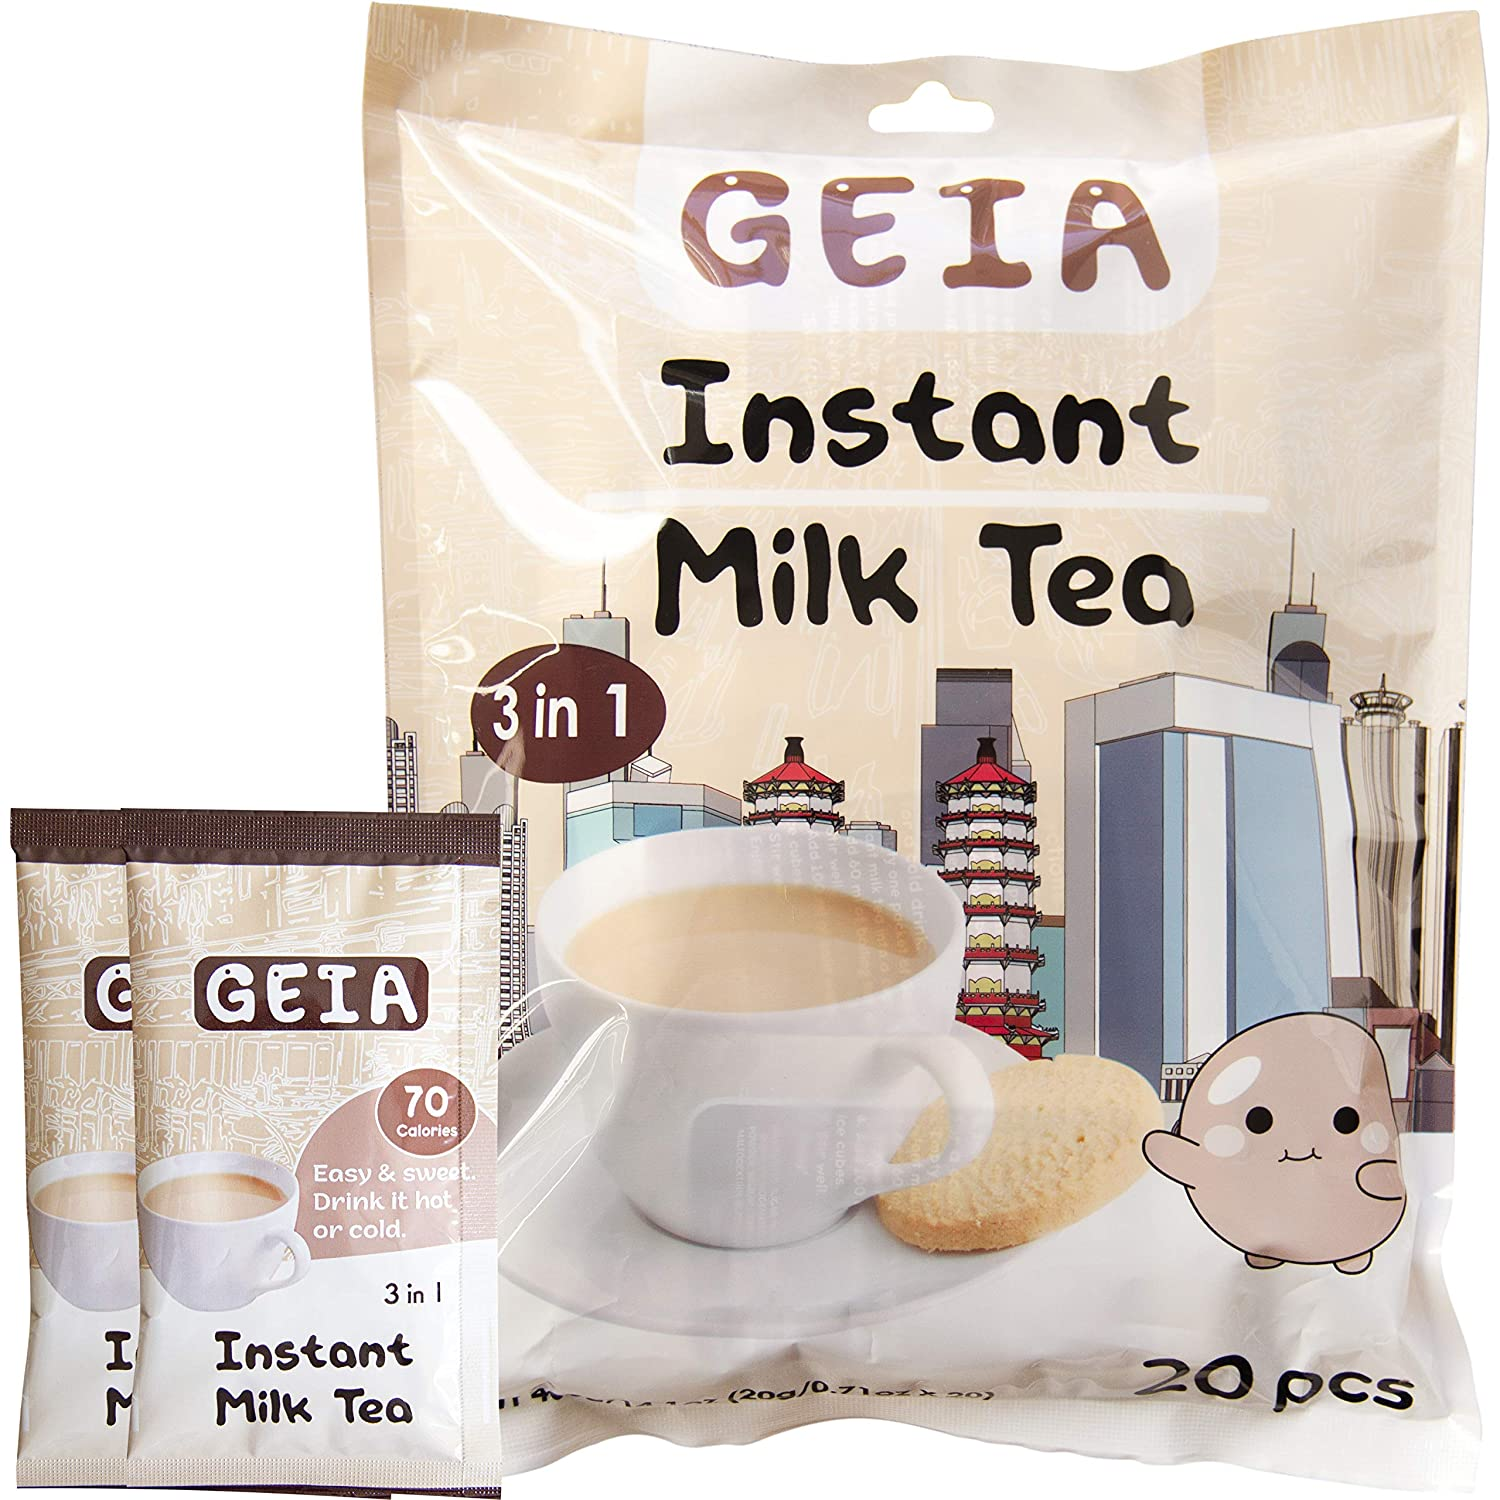 Geia 3 in 1 Taiwanese Instant Milk Tea Drink Hot Or Cold (20-pouch)